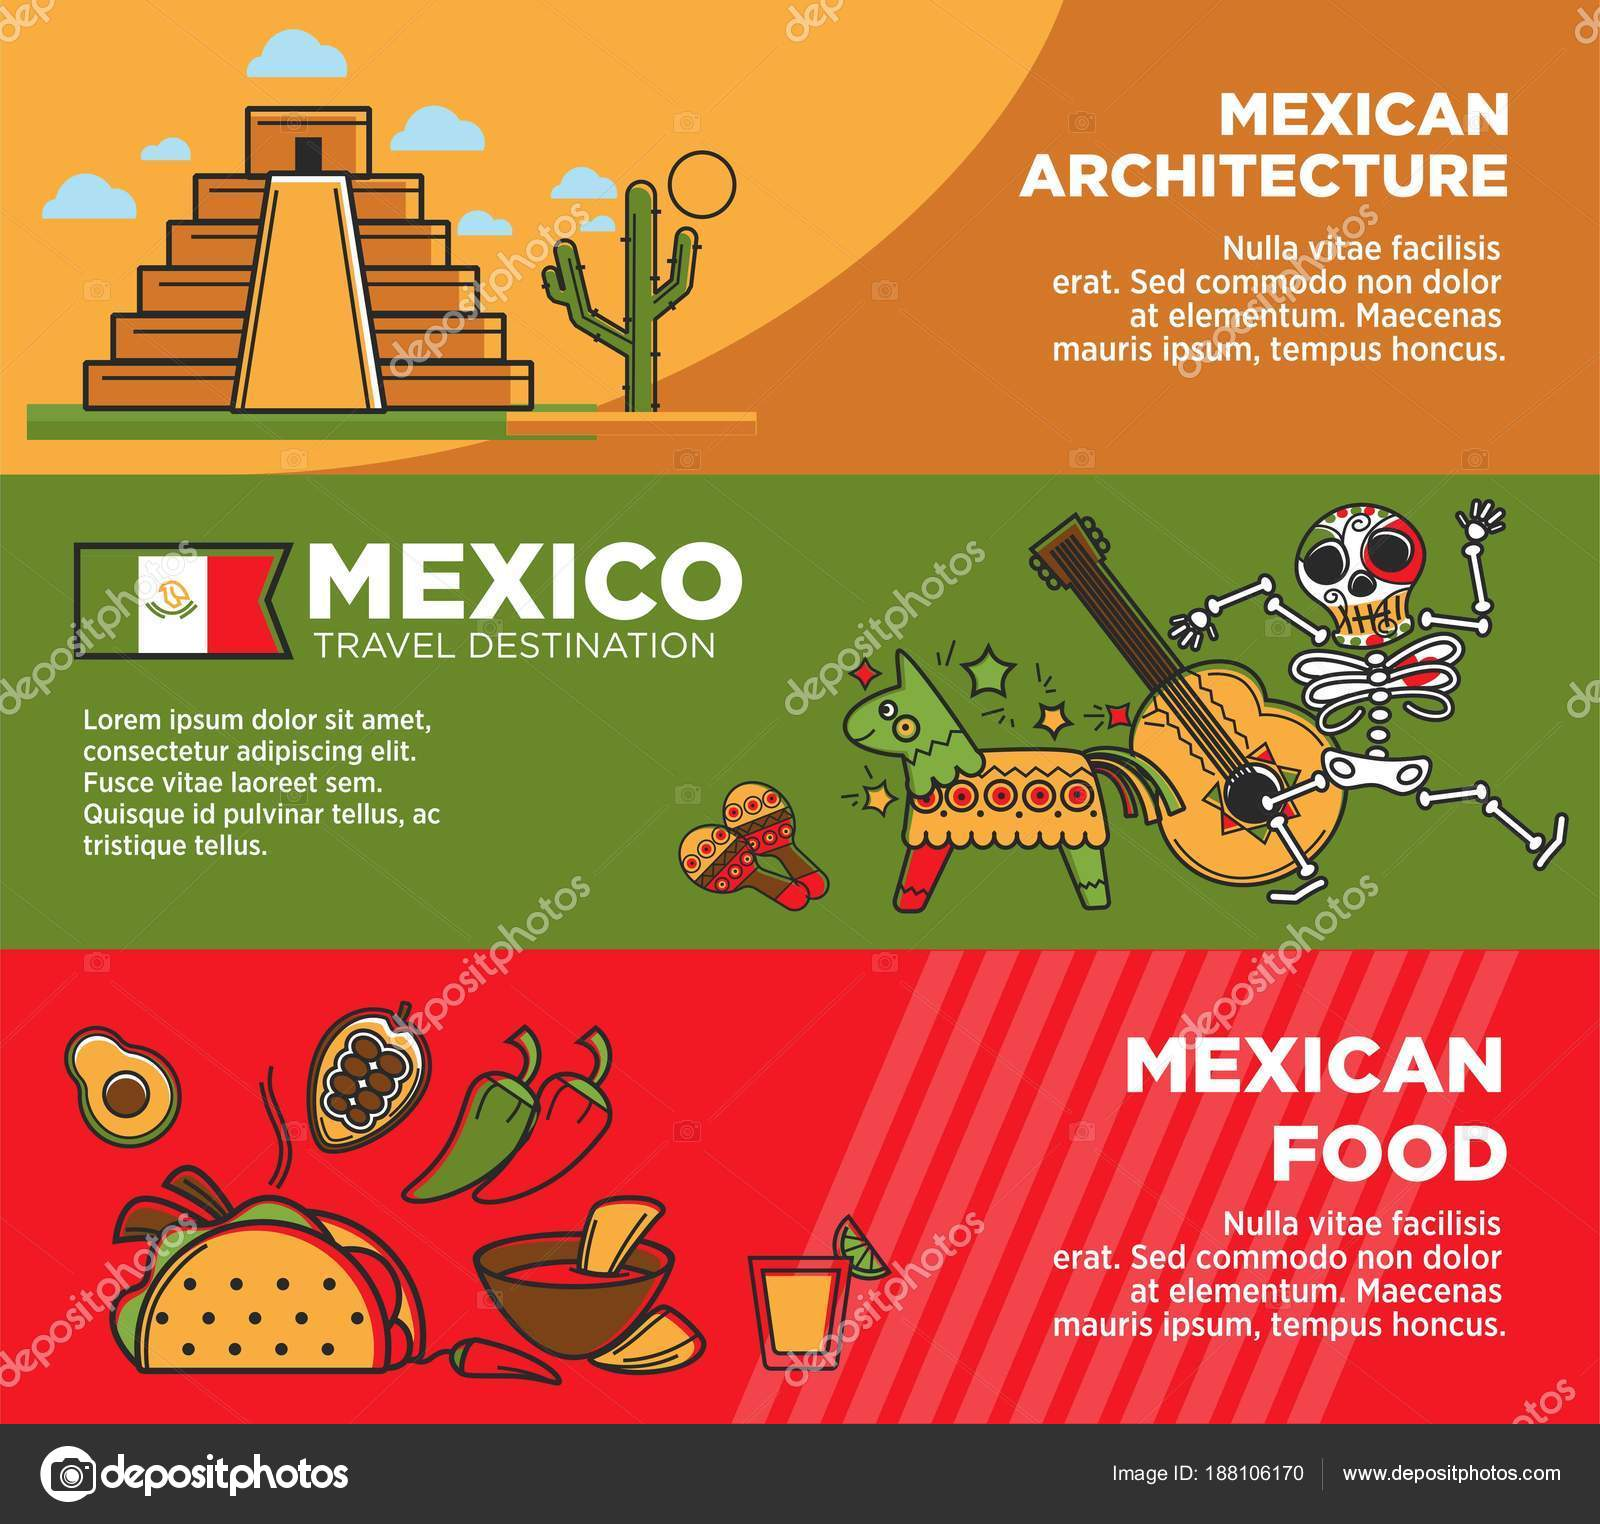 Mexican Architecture And Food On Promotional Posters Set Historical Heritage Hot Exotic Spicy National Symbols Travel Agency Commercial